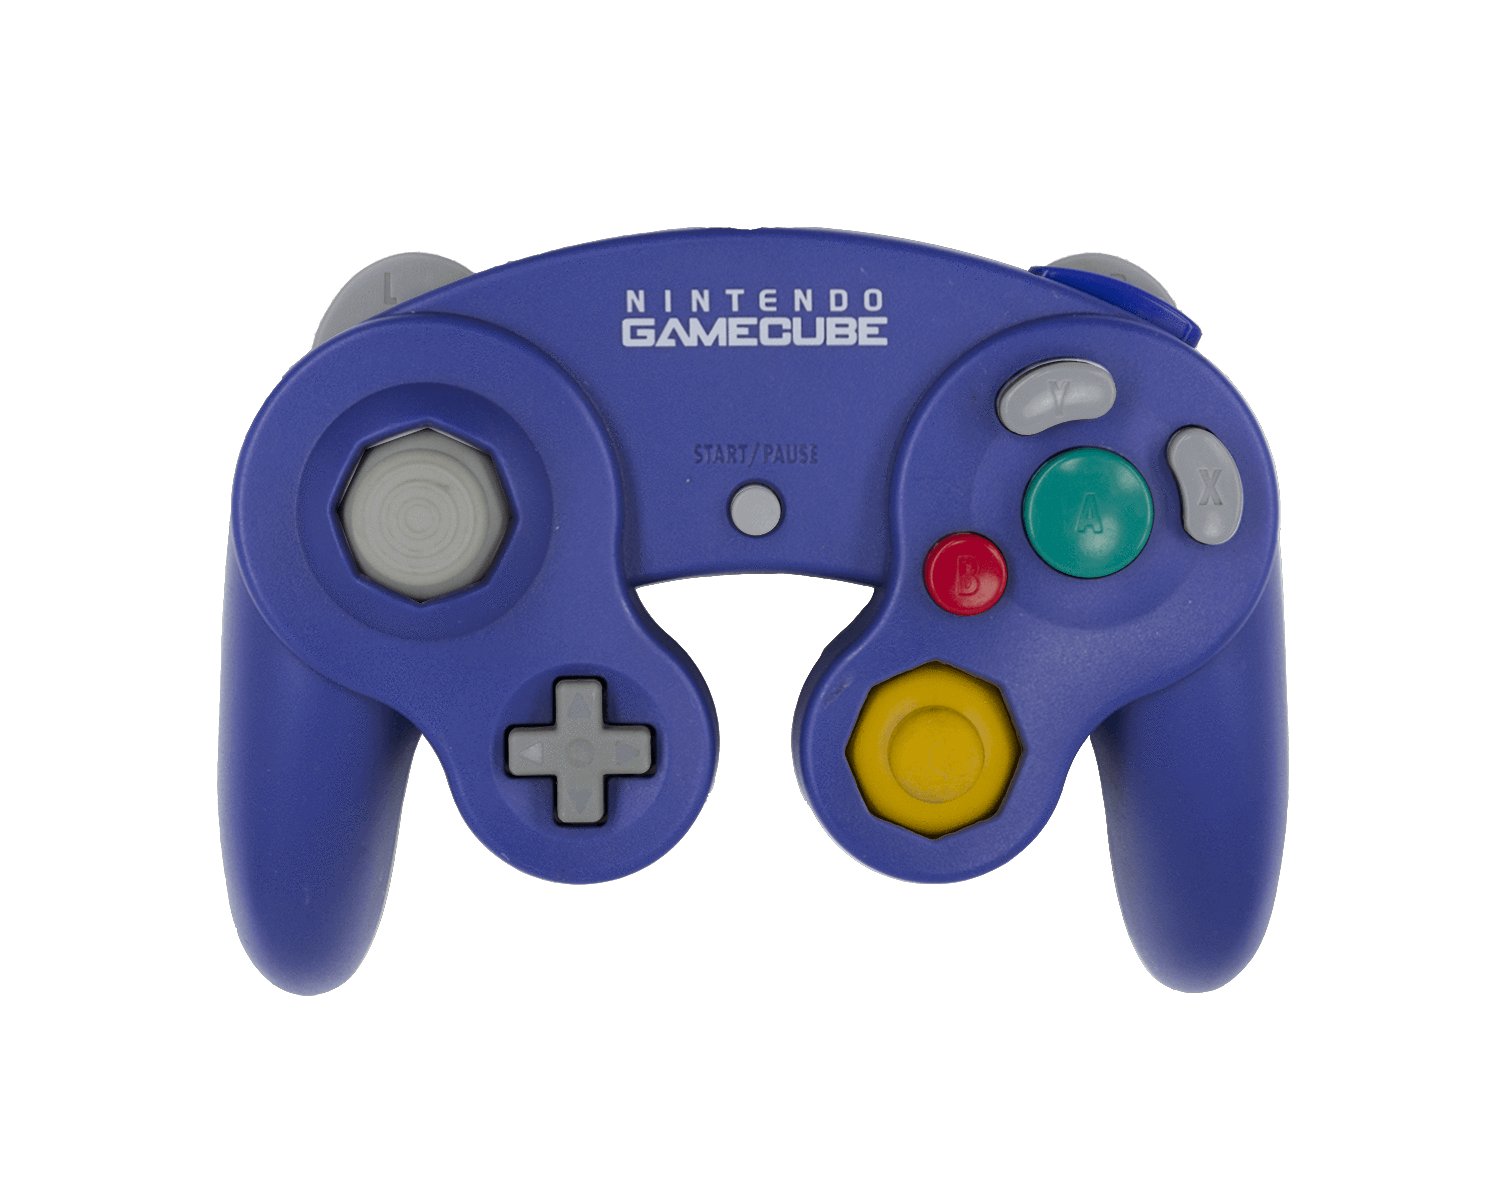 Gamecube transparent indigo. Battle beaver customs stock